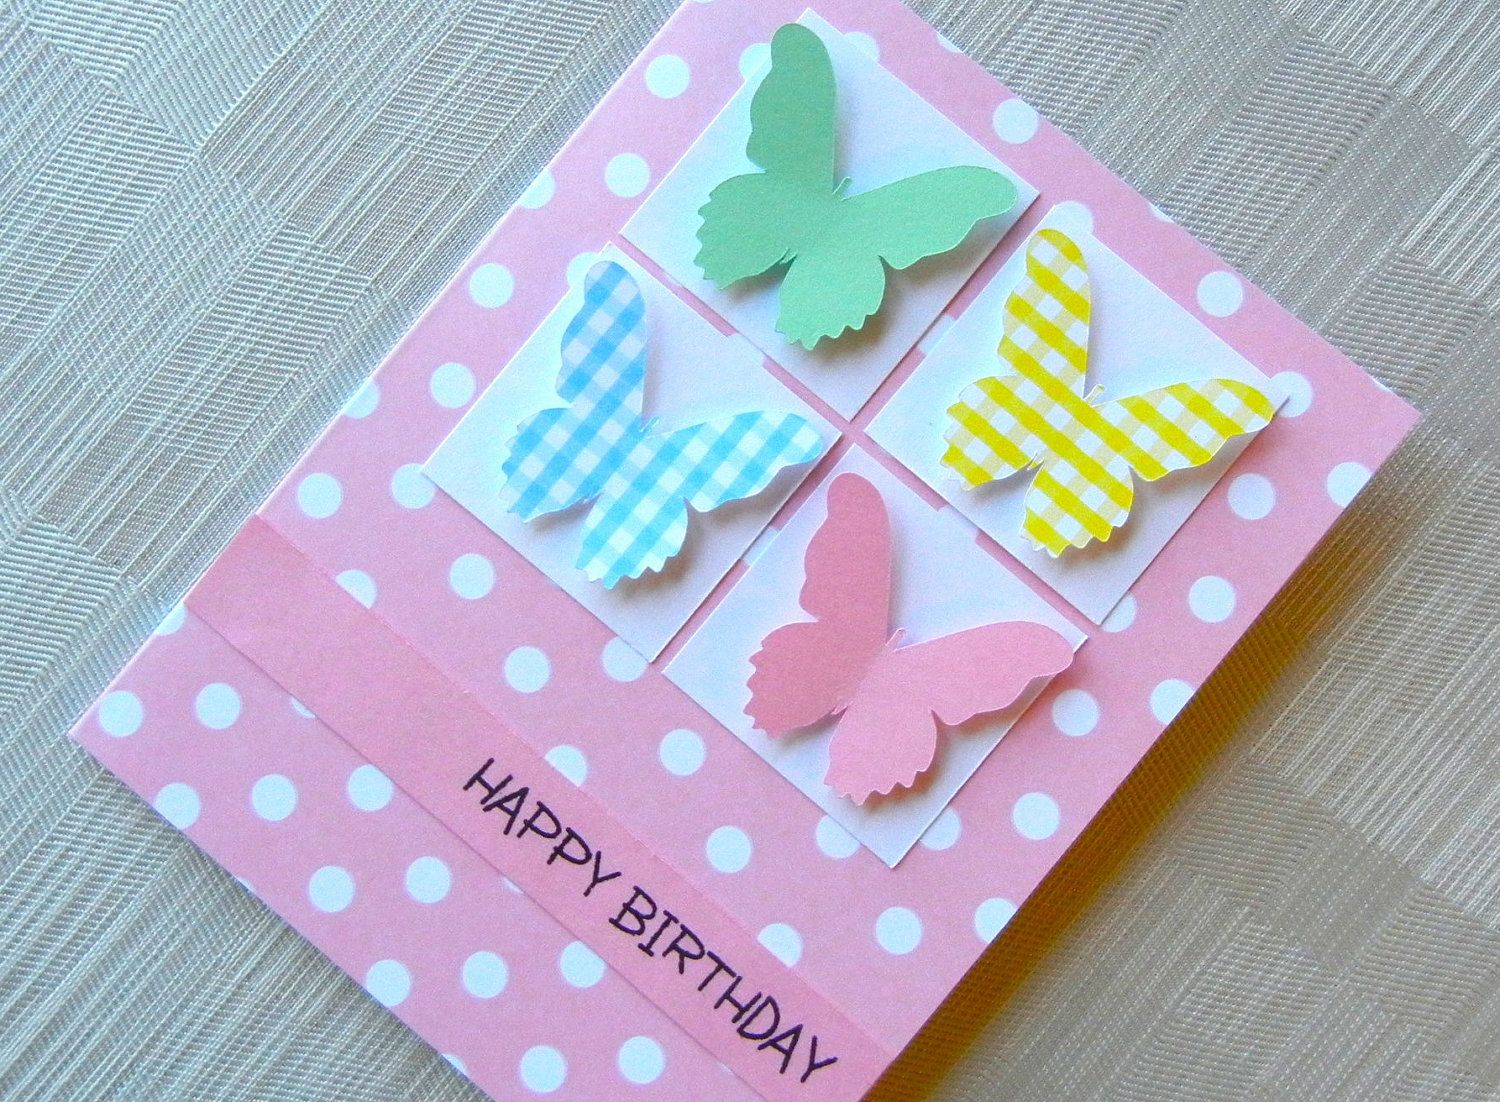 Pink hand made cards pinterest birthday card happy birthday kids pink hand made cards pinterest birthday card happy birthday kids birthday card by keylimecards kristyandbryce Choice Image